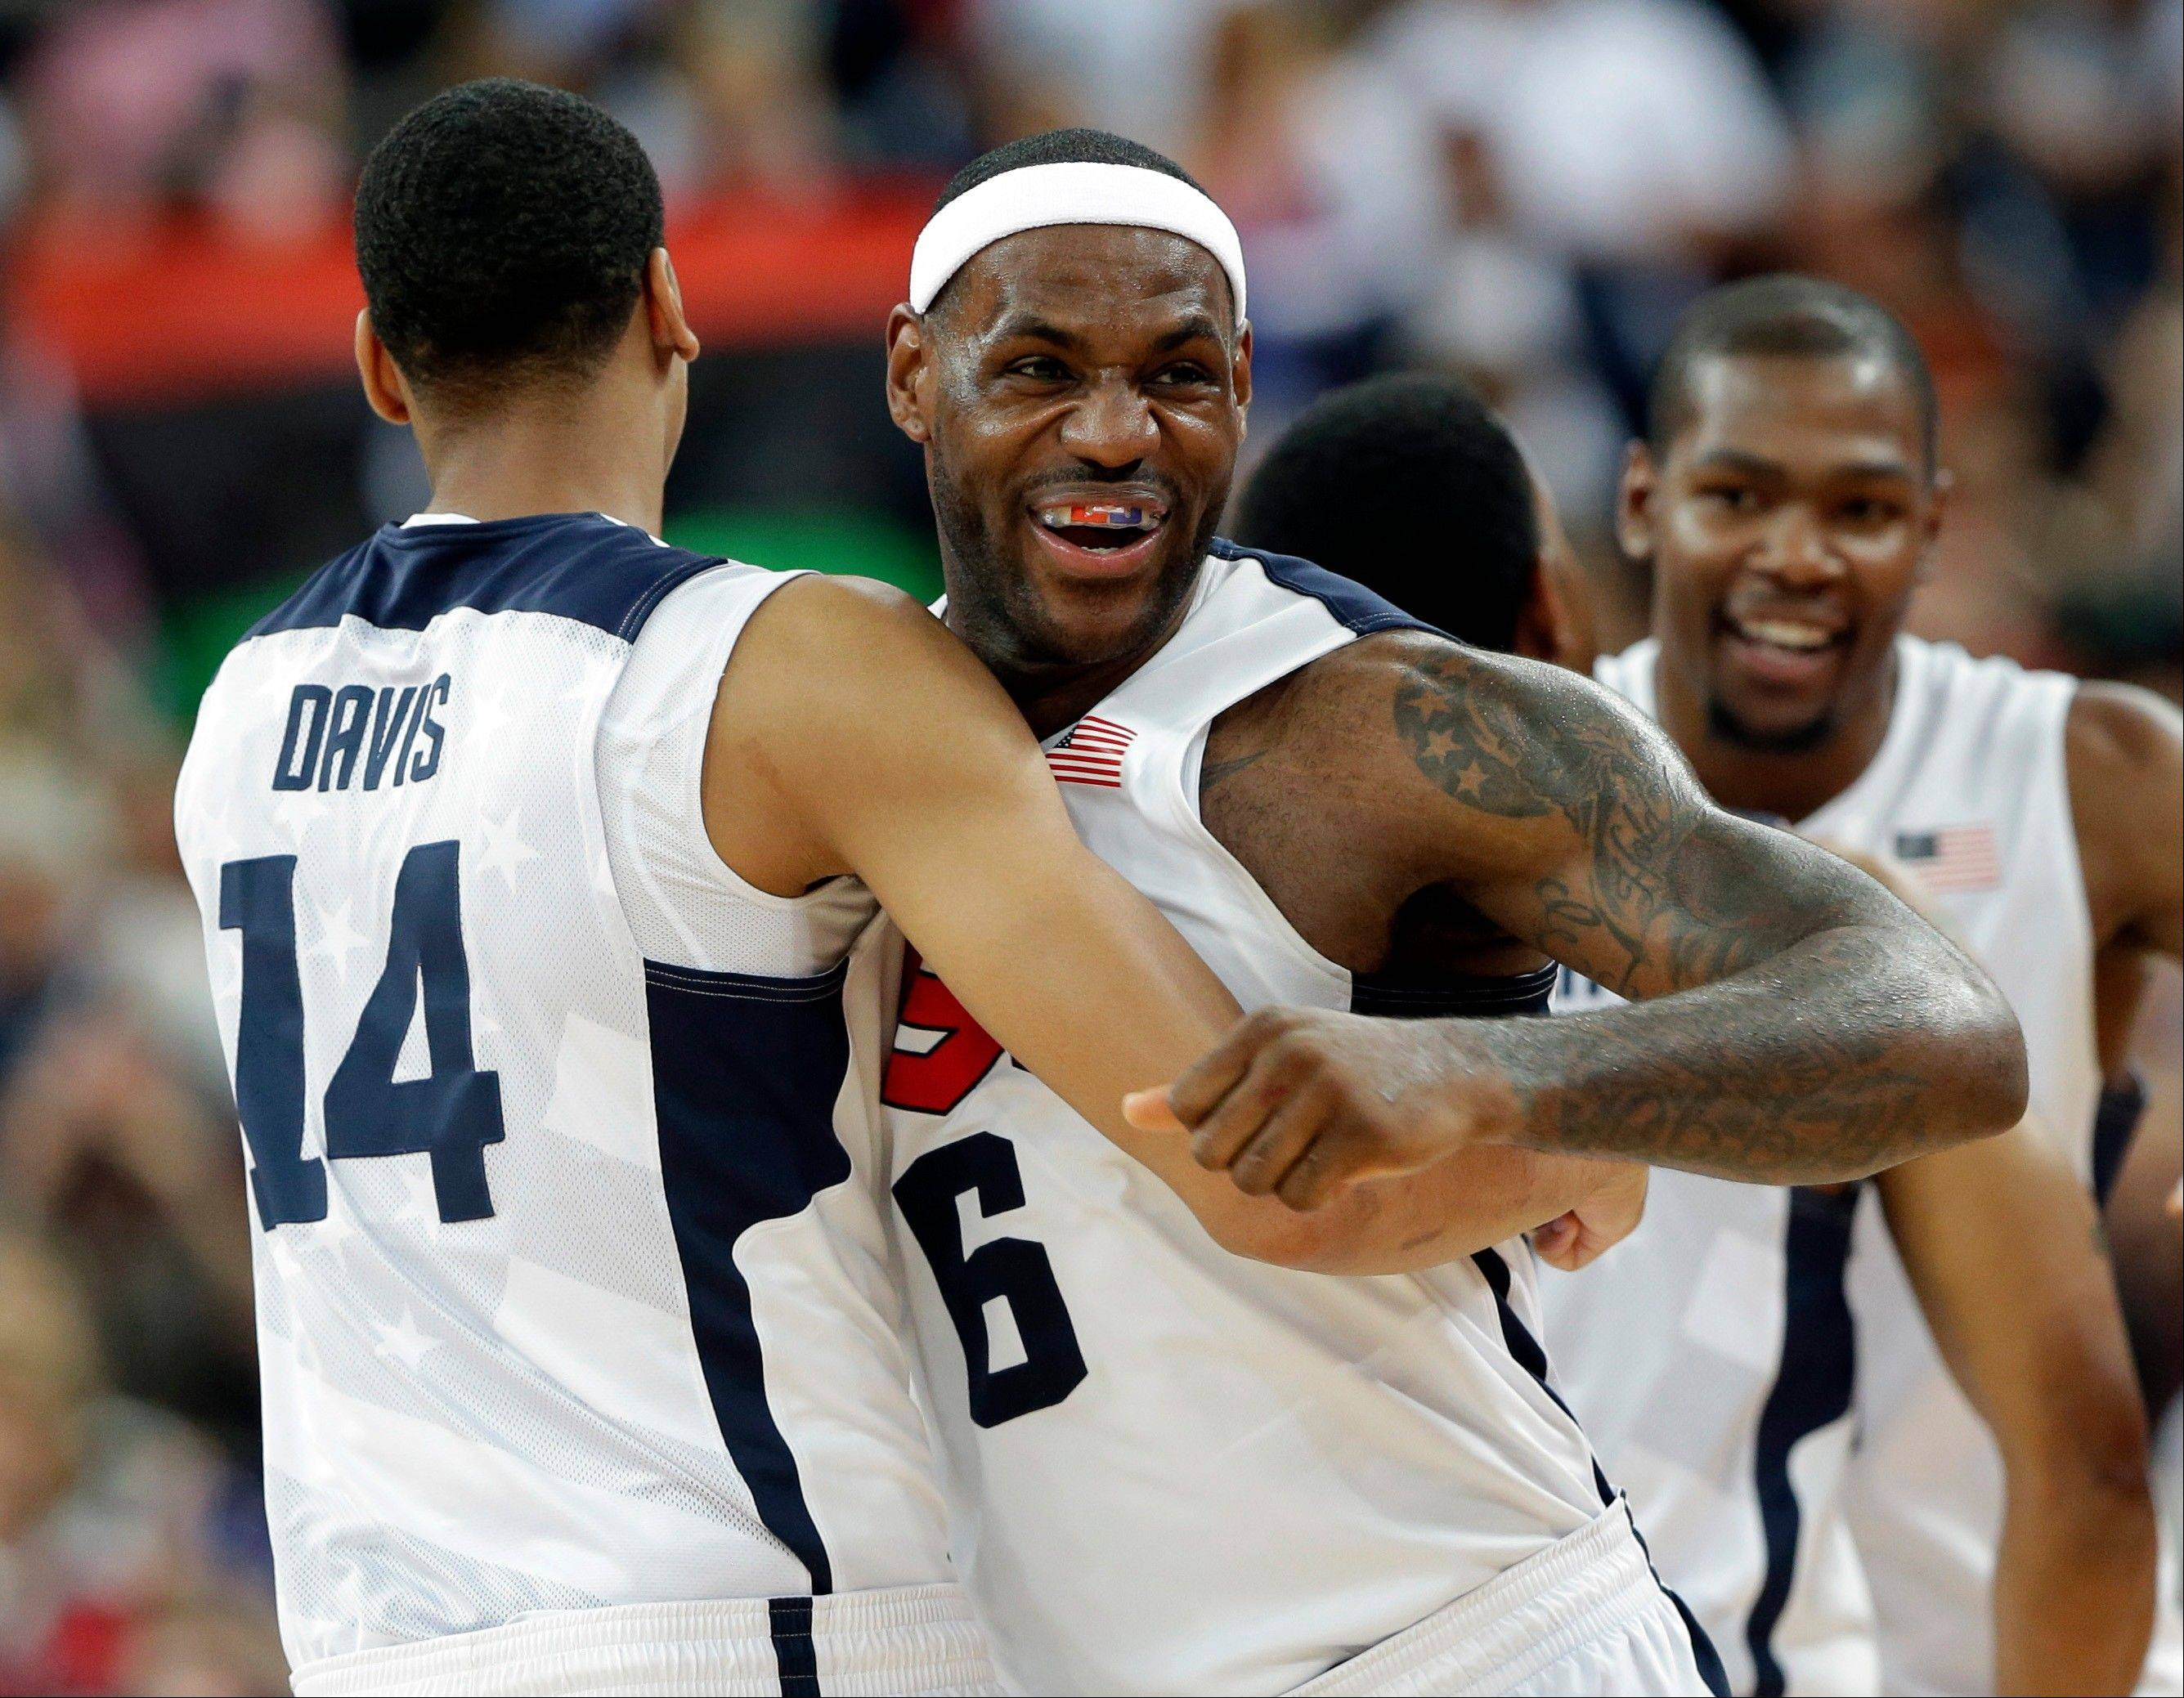 United States' LeBron James and Anthony Davis celebrate after the men's gold medal basketball game at the 2012 Summer Olympics Sunday in London. USA won 107-100.